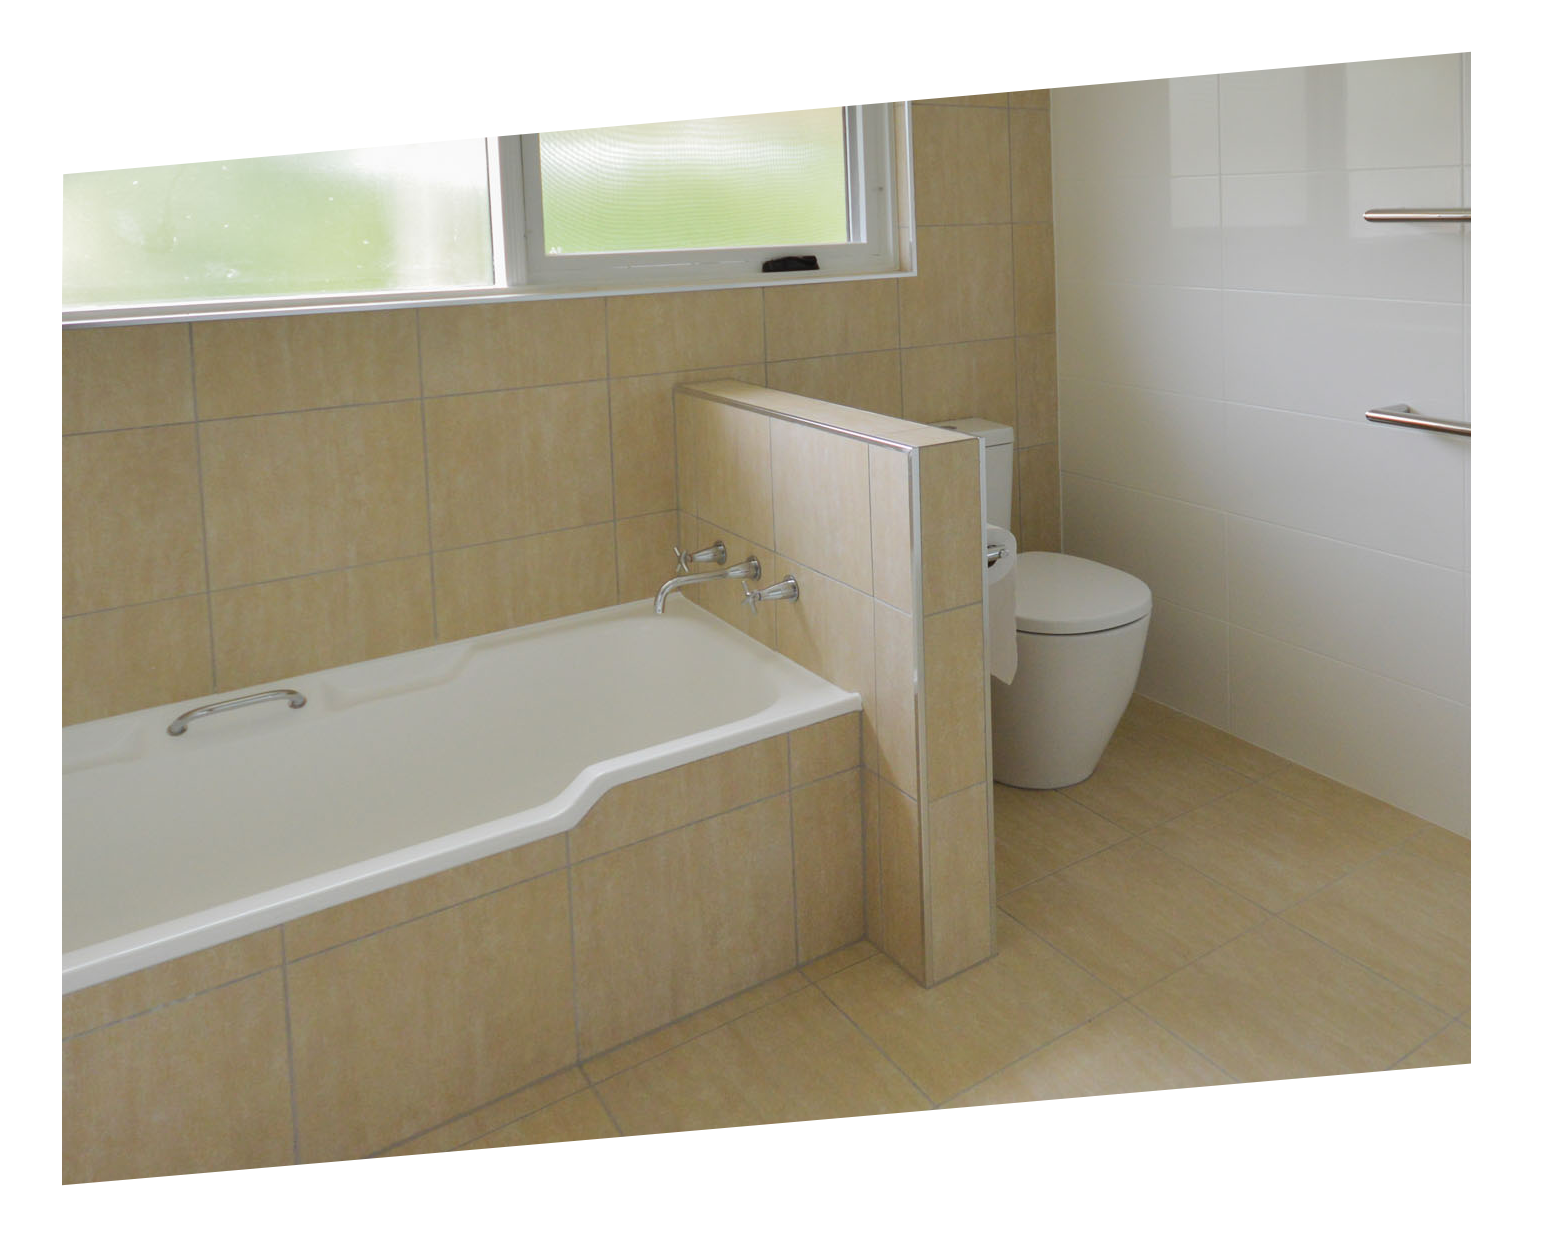 Premium package gunn building canberra bathroom for Small bathroom renovations canberra